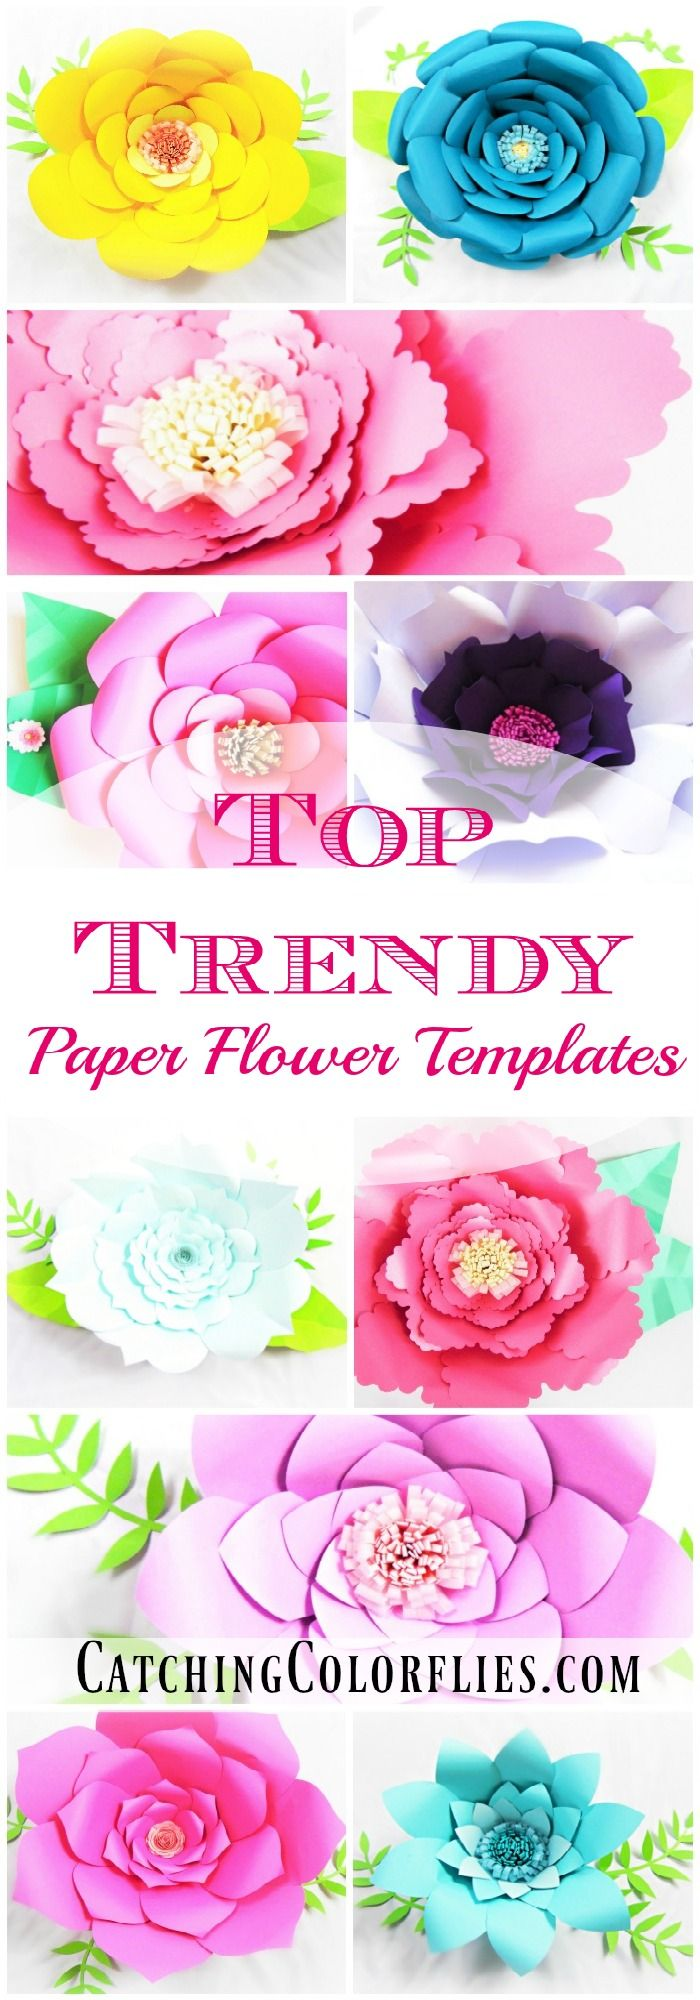 The 25 best paper flower templates ideas on pinterest paper easy method when building any diy giant paper flower diy giant paper flowers easy backdrop dhlflorist Choice Image